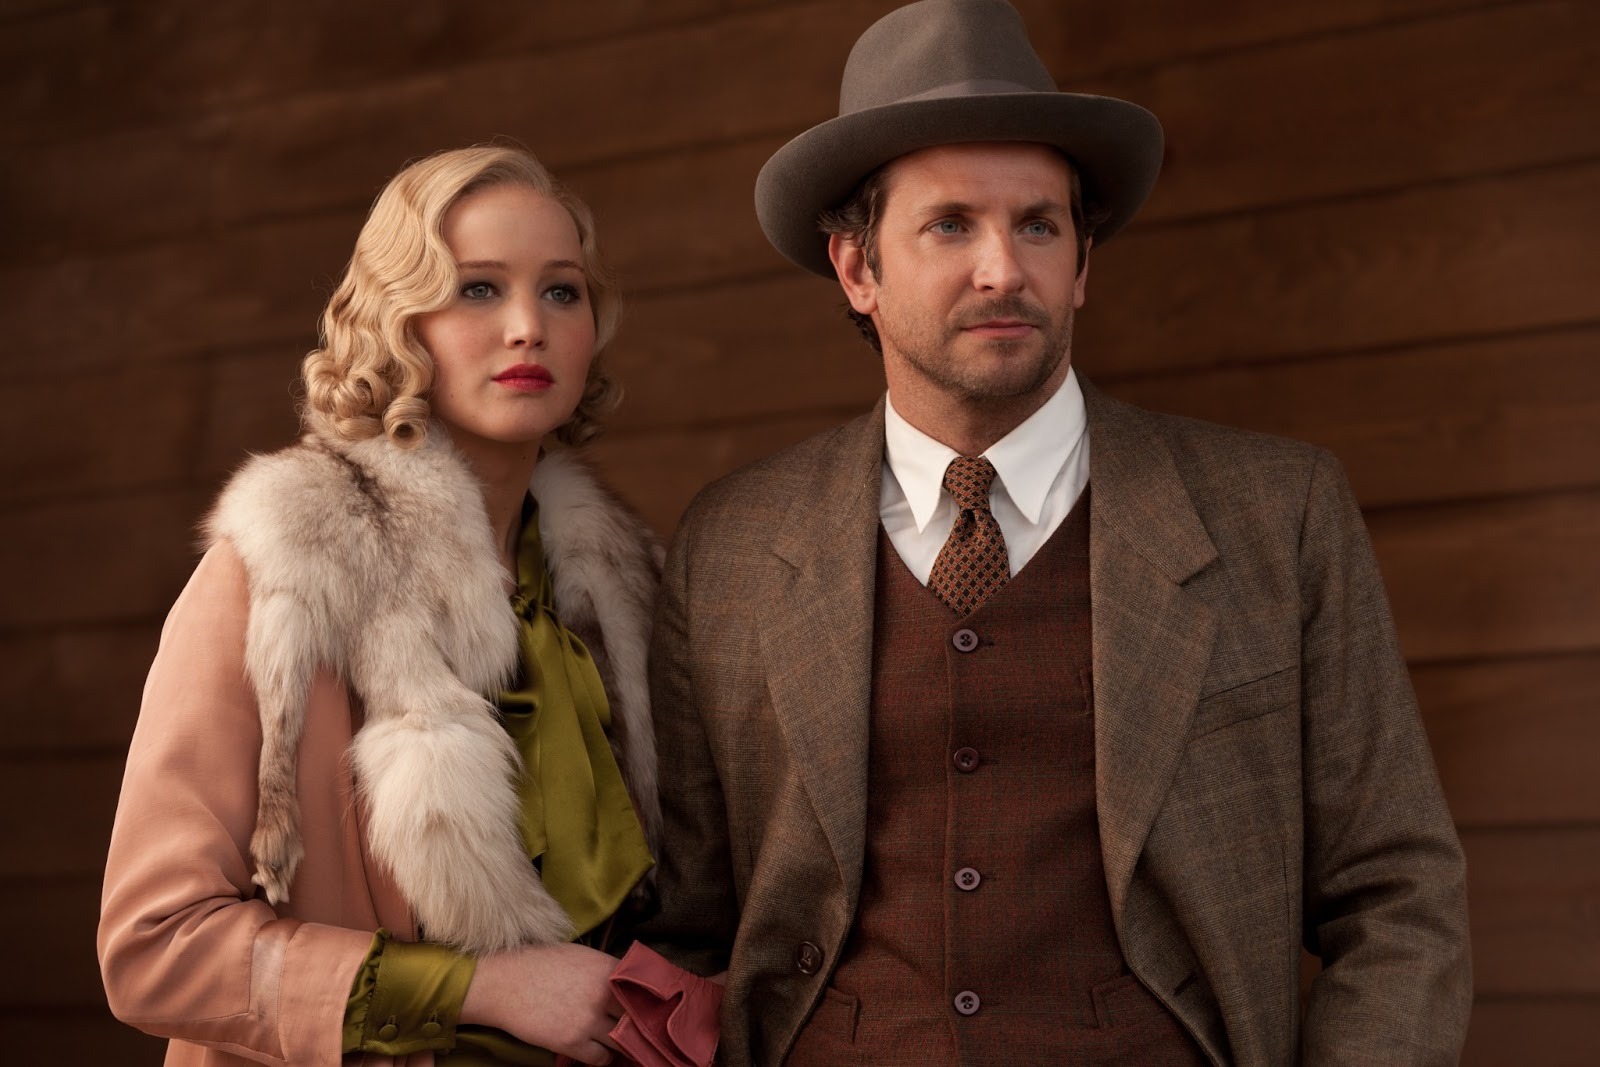 Serena, The Official Trailer Featuring Jennifer Lawrence, Bradley Cooper